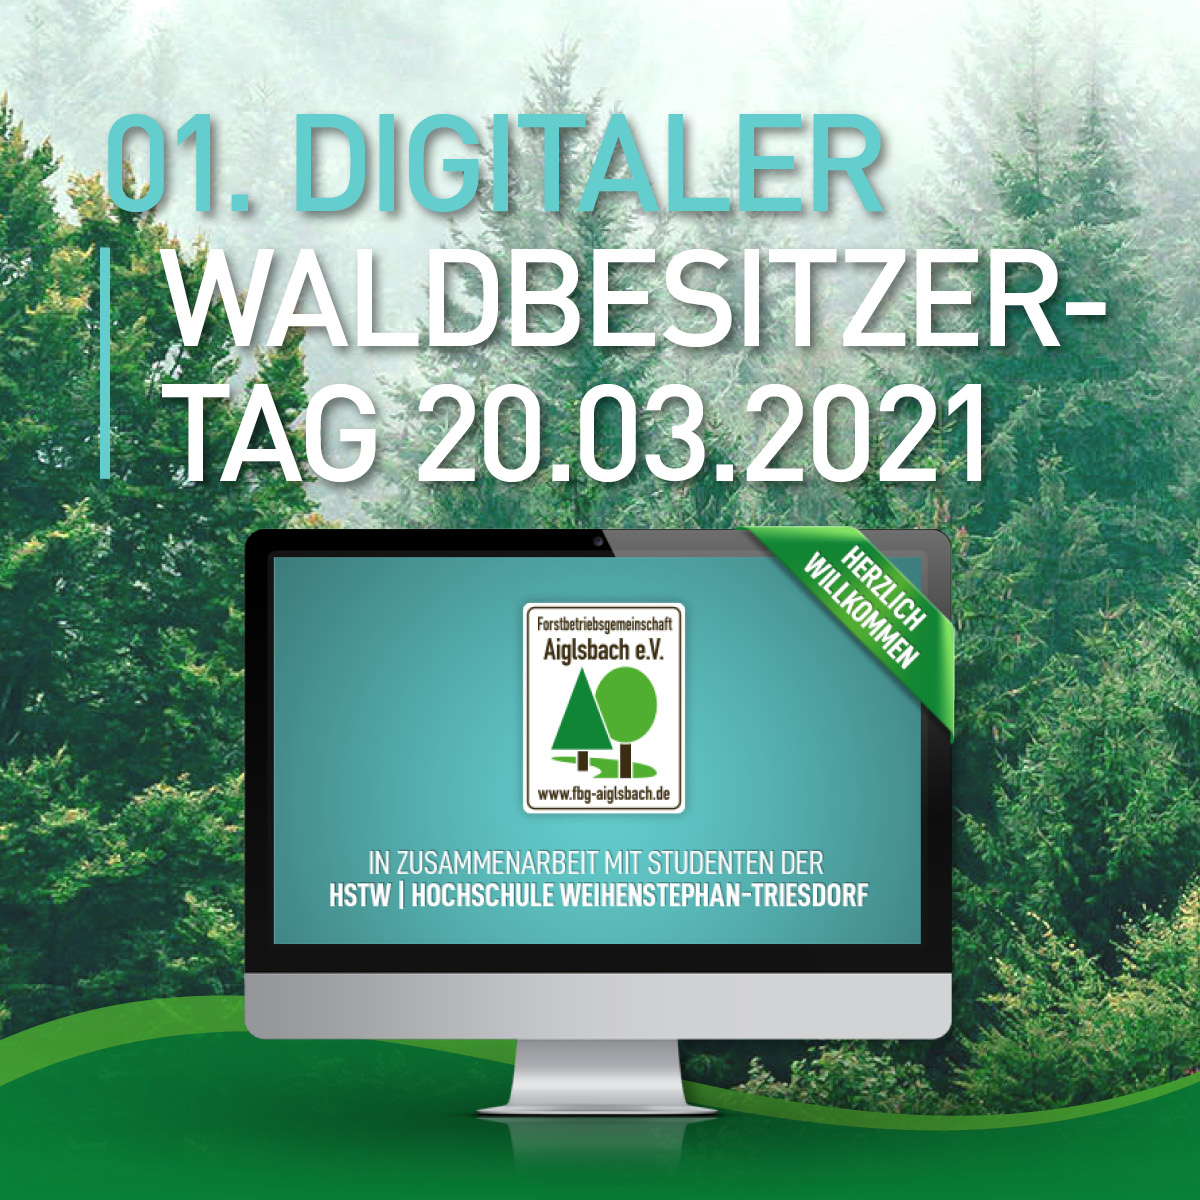 01. Digitaler Waldbesitzertag